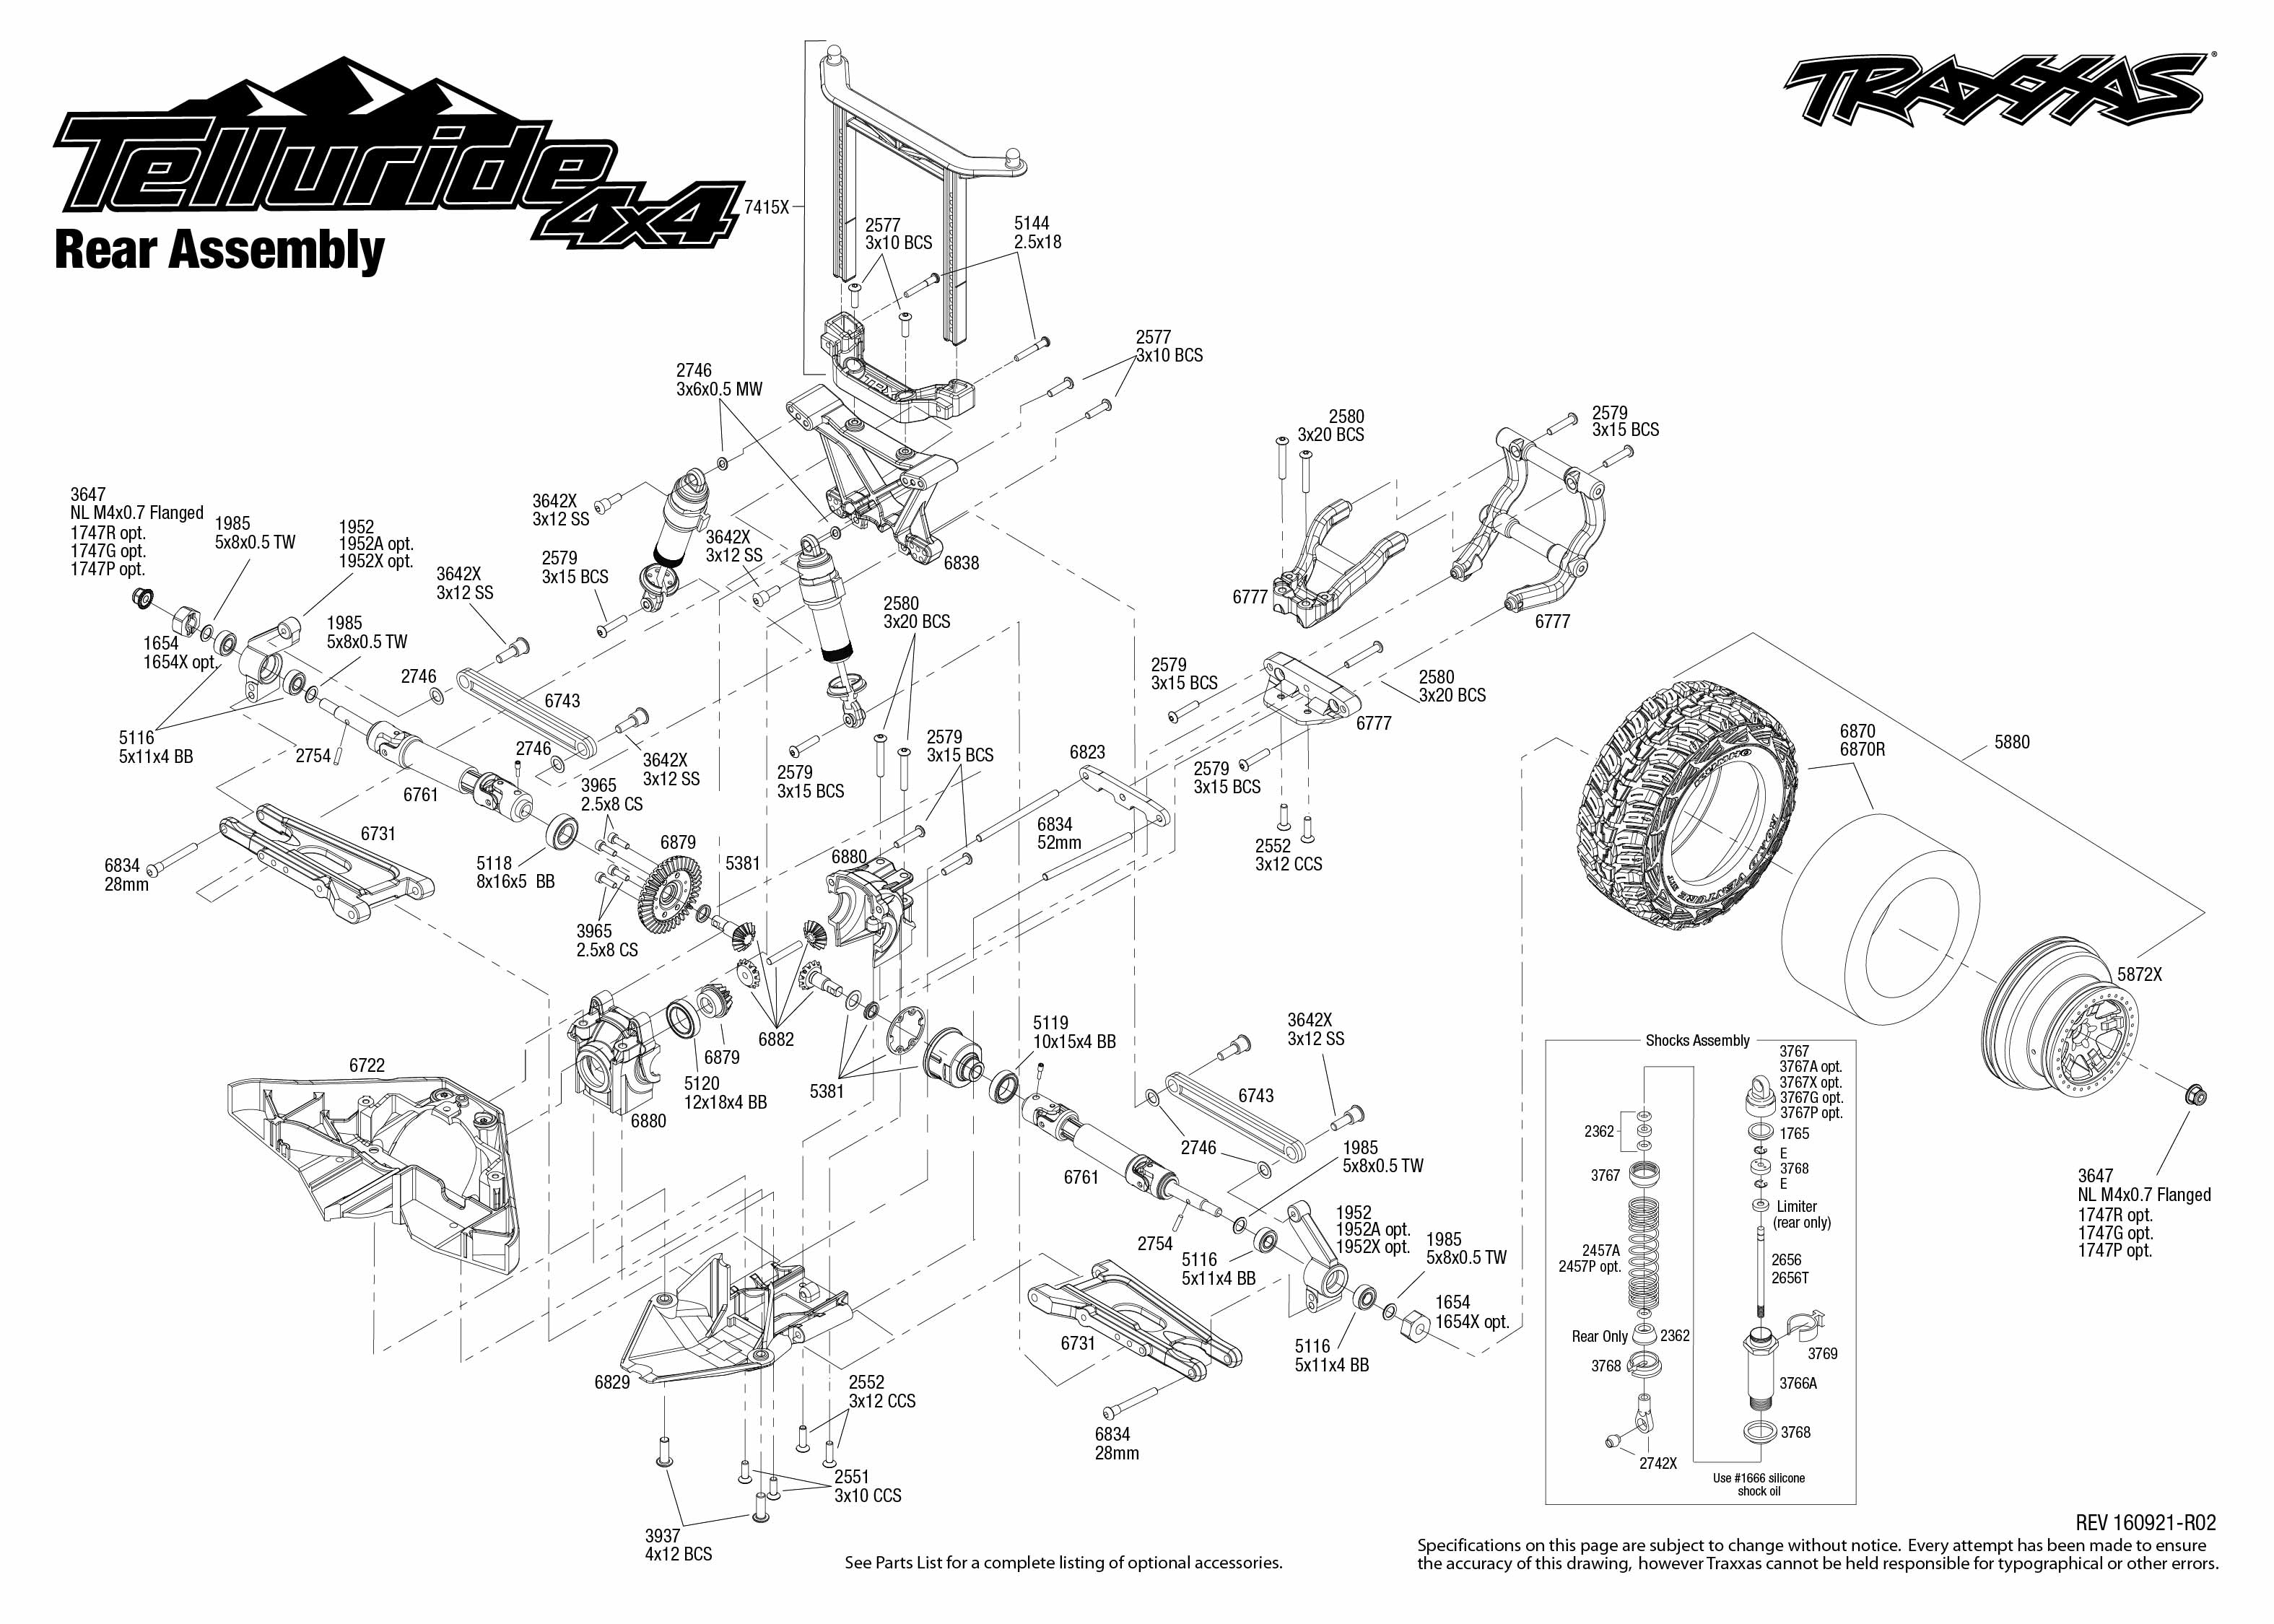 Telluride 4x4 67044 1 rear assembly exploded view traxxas view pdf ccuart Images